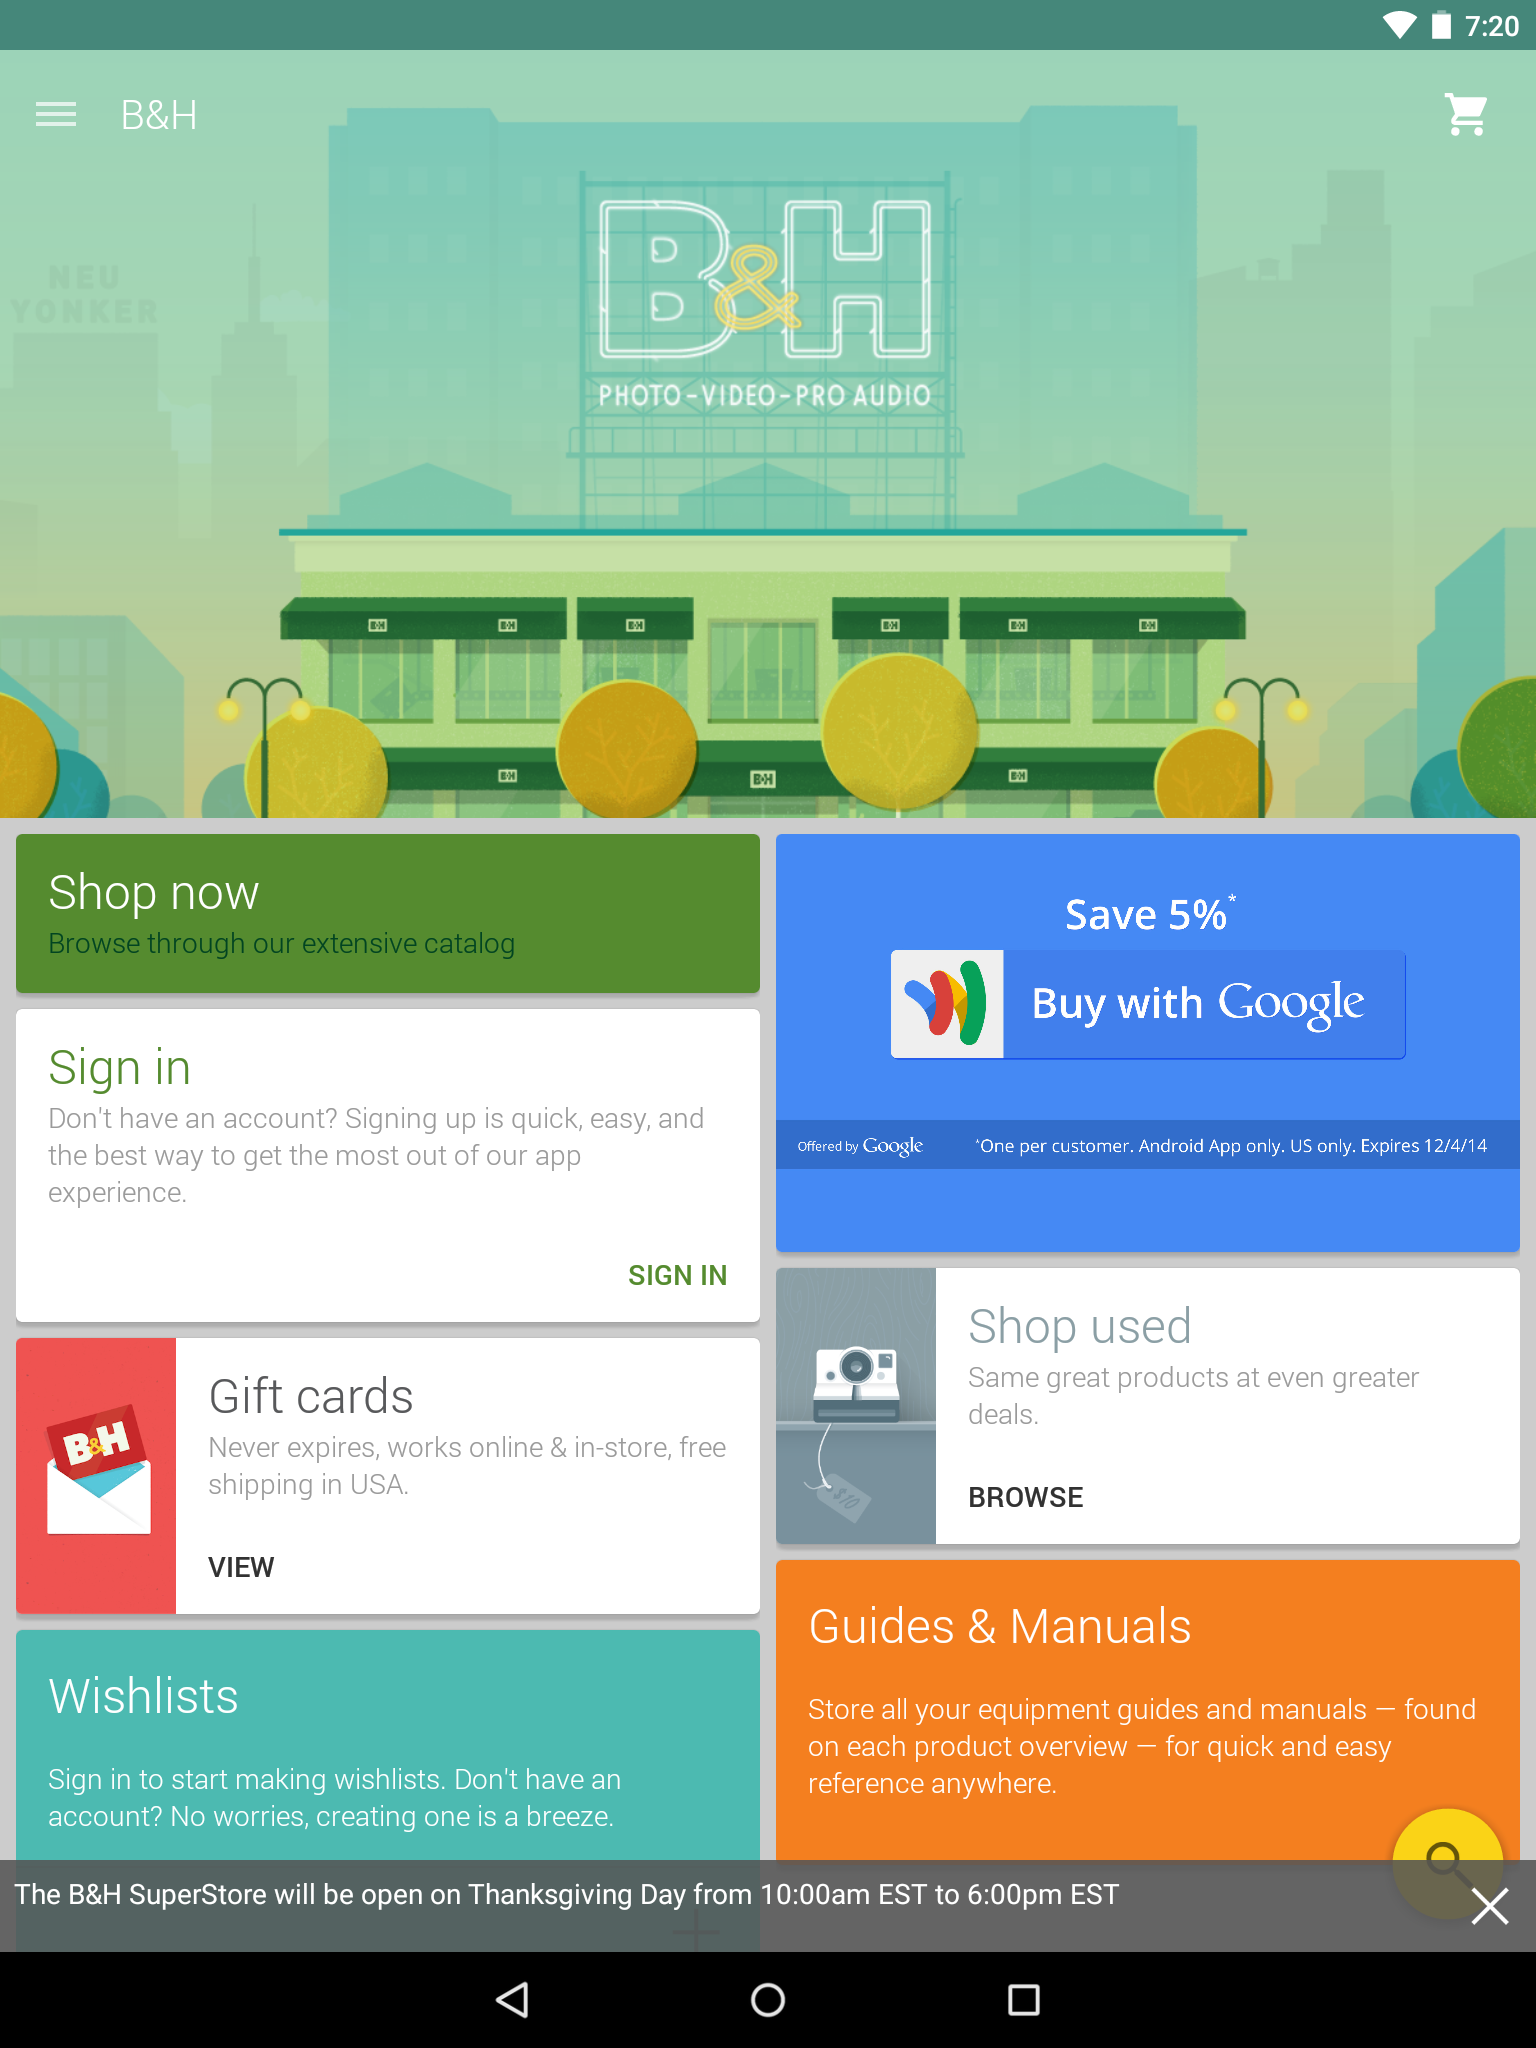 B&H App Gets Big Material-Inspired Makeover [Update: New Icon Too]